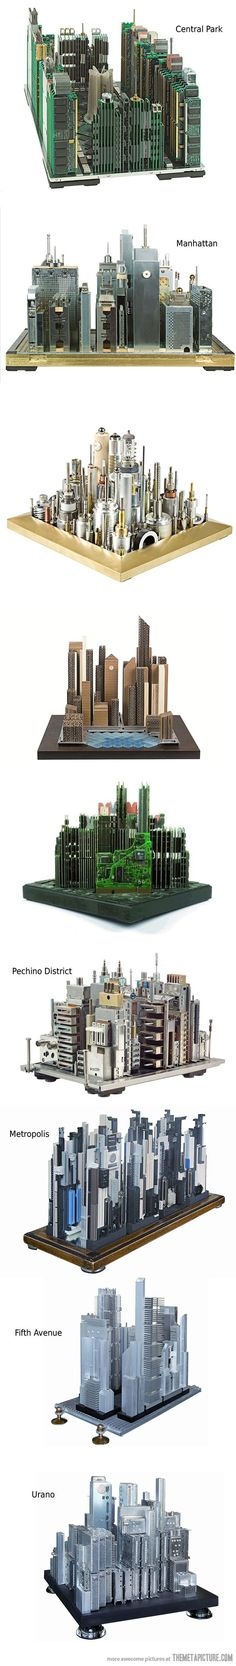 Awesome artist builds cities with computer circuits http://themetapicture.com/awesome-artist-builds-cities-with-computer-circuits/